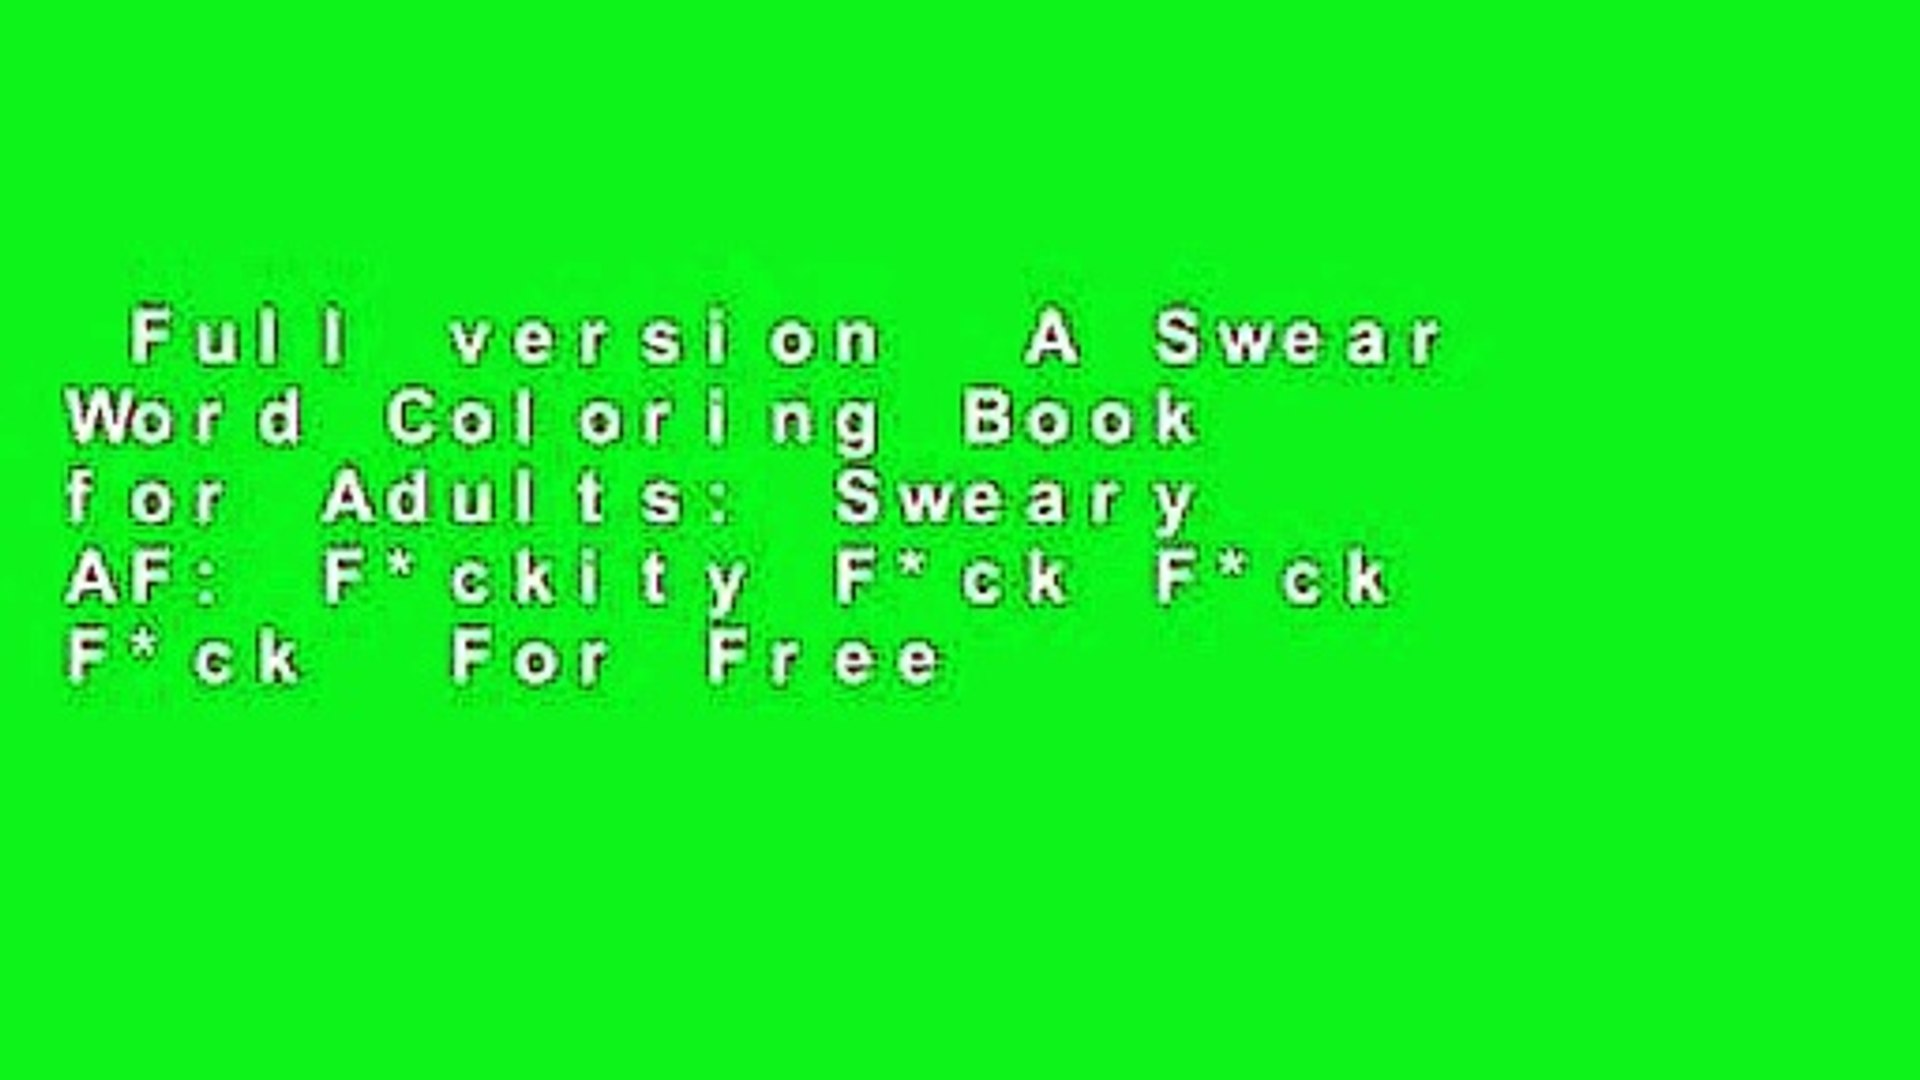 Full version  A Swear Word Coloring Book for Adults: Sweary AF: F*ckity F*ck F*ck F*ck  For Free